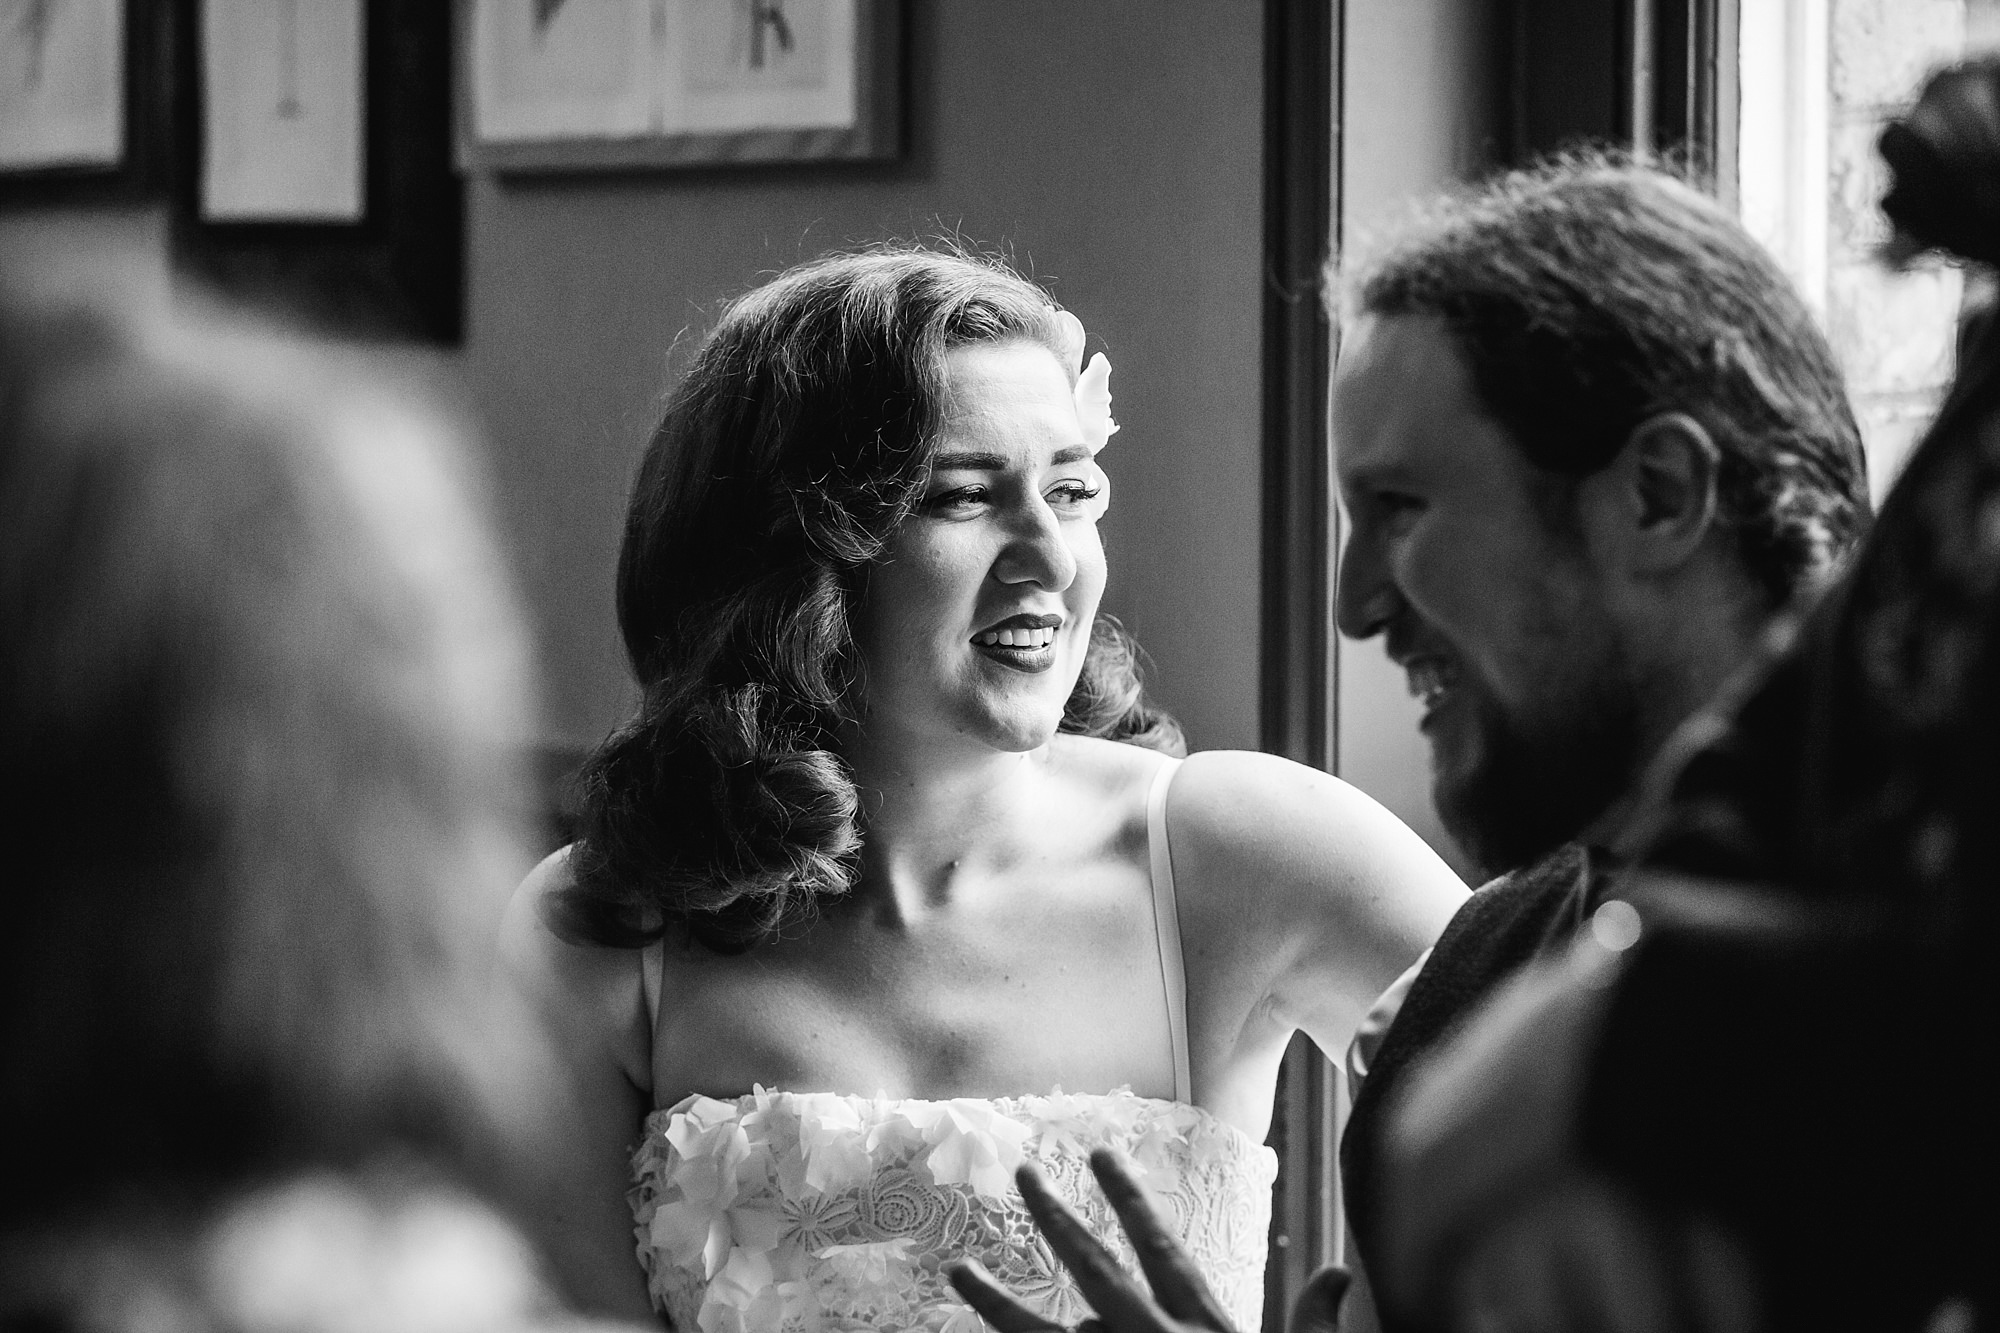 The Grange Ealing wedding bride and groom laugh together during dinner